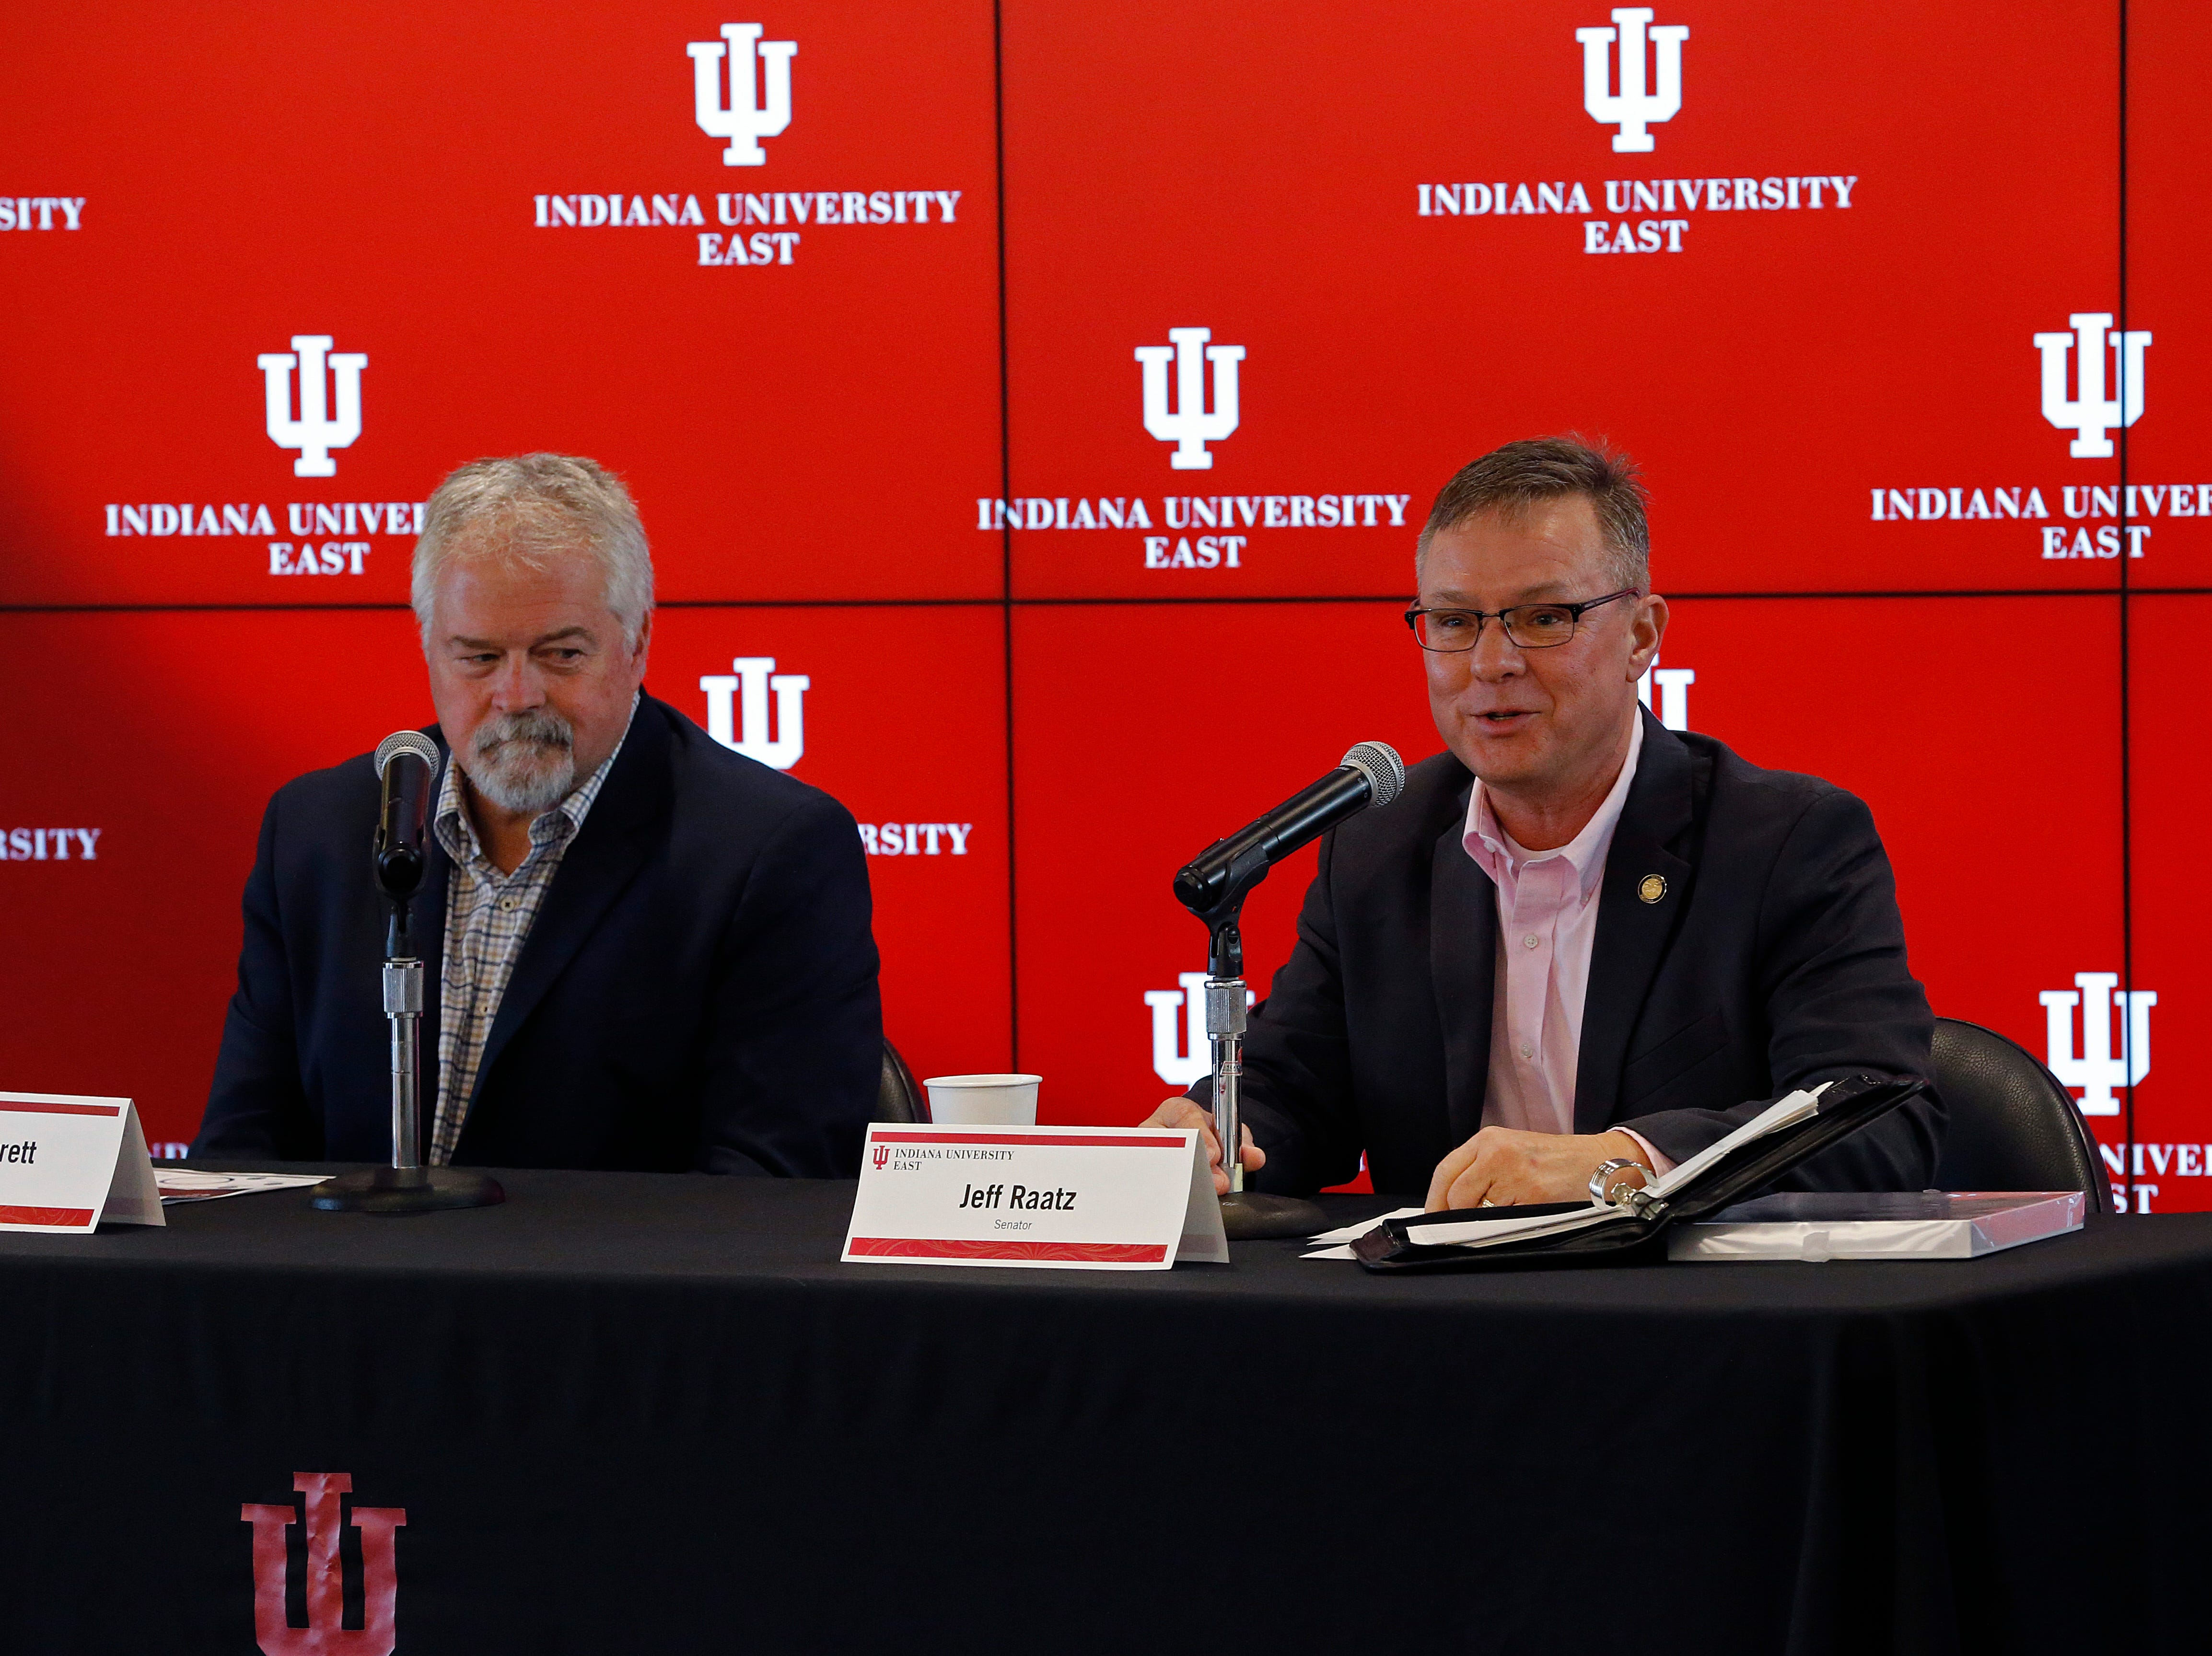 Indiana University East hosted its second Legislative Forum of the year on Friday, March 1, 2019, with State Rep. Brad Barrett and State Sen. Jeff Raatz in attendance.